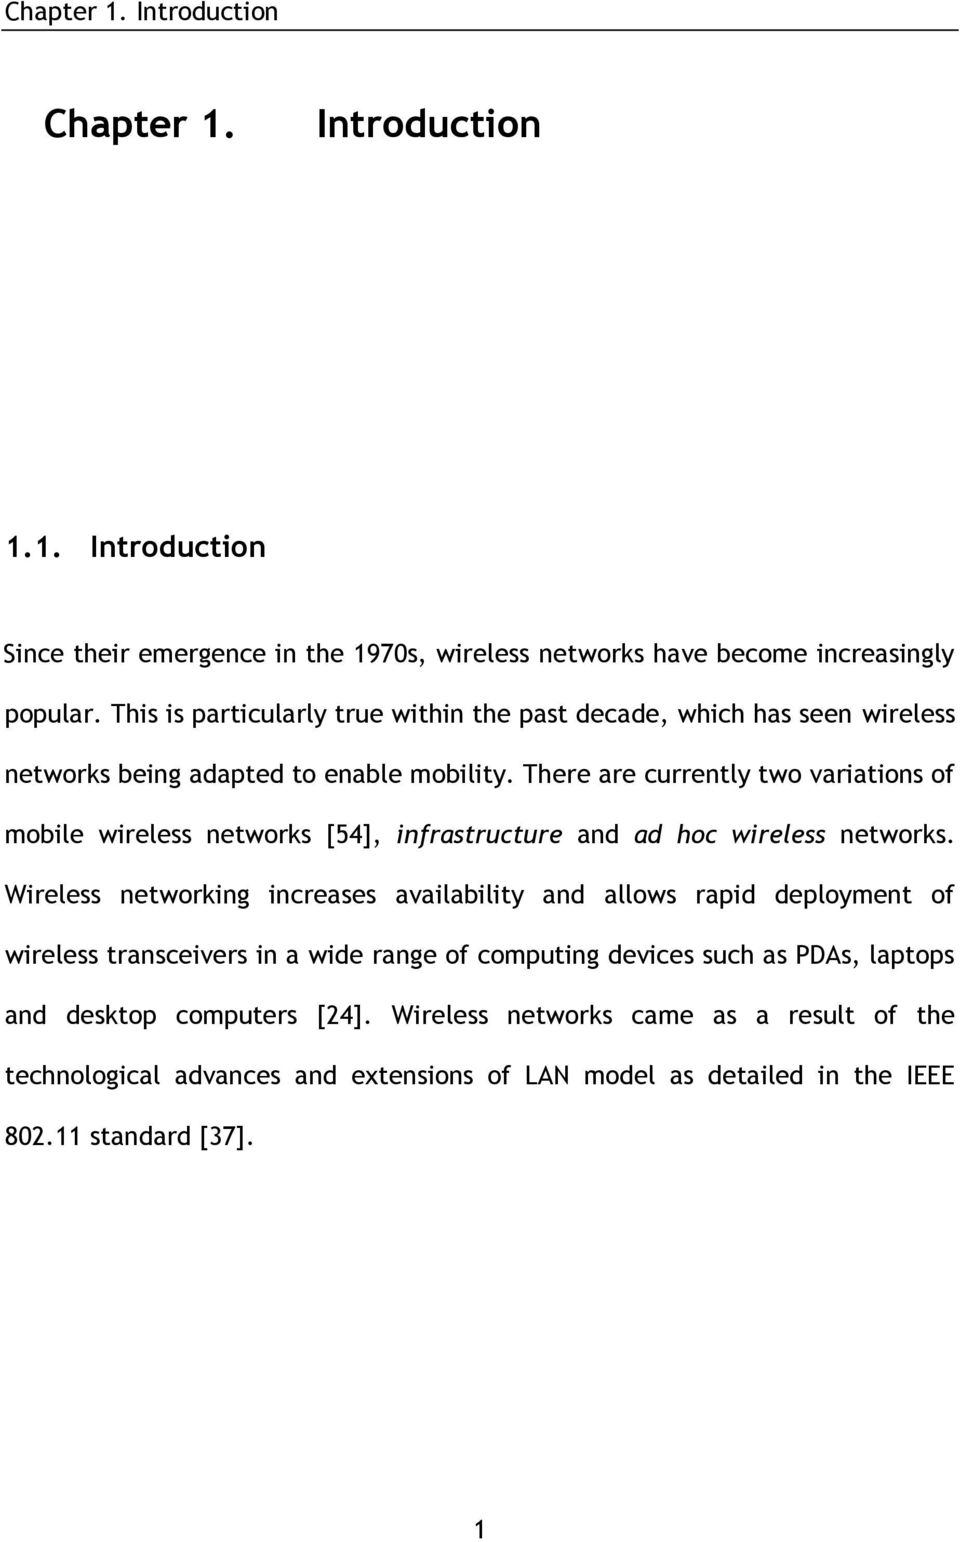 There are currently two variations of mobile wireless networks [54], infrastructure and ad hoc wireless networks.